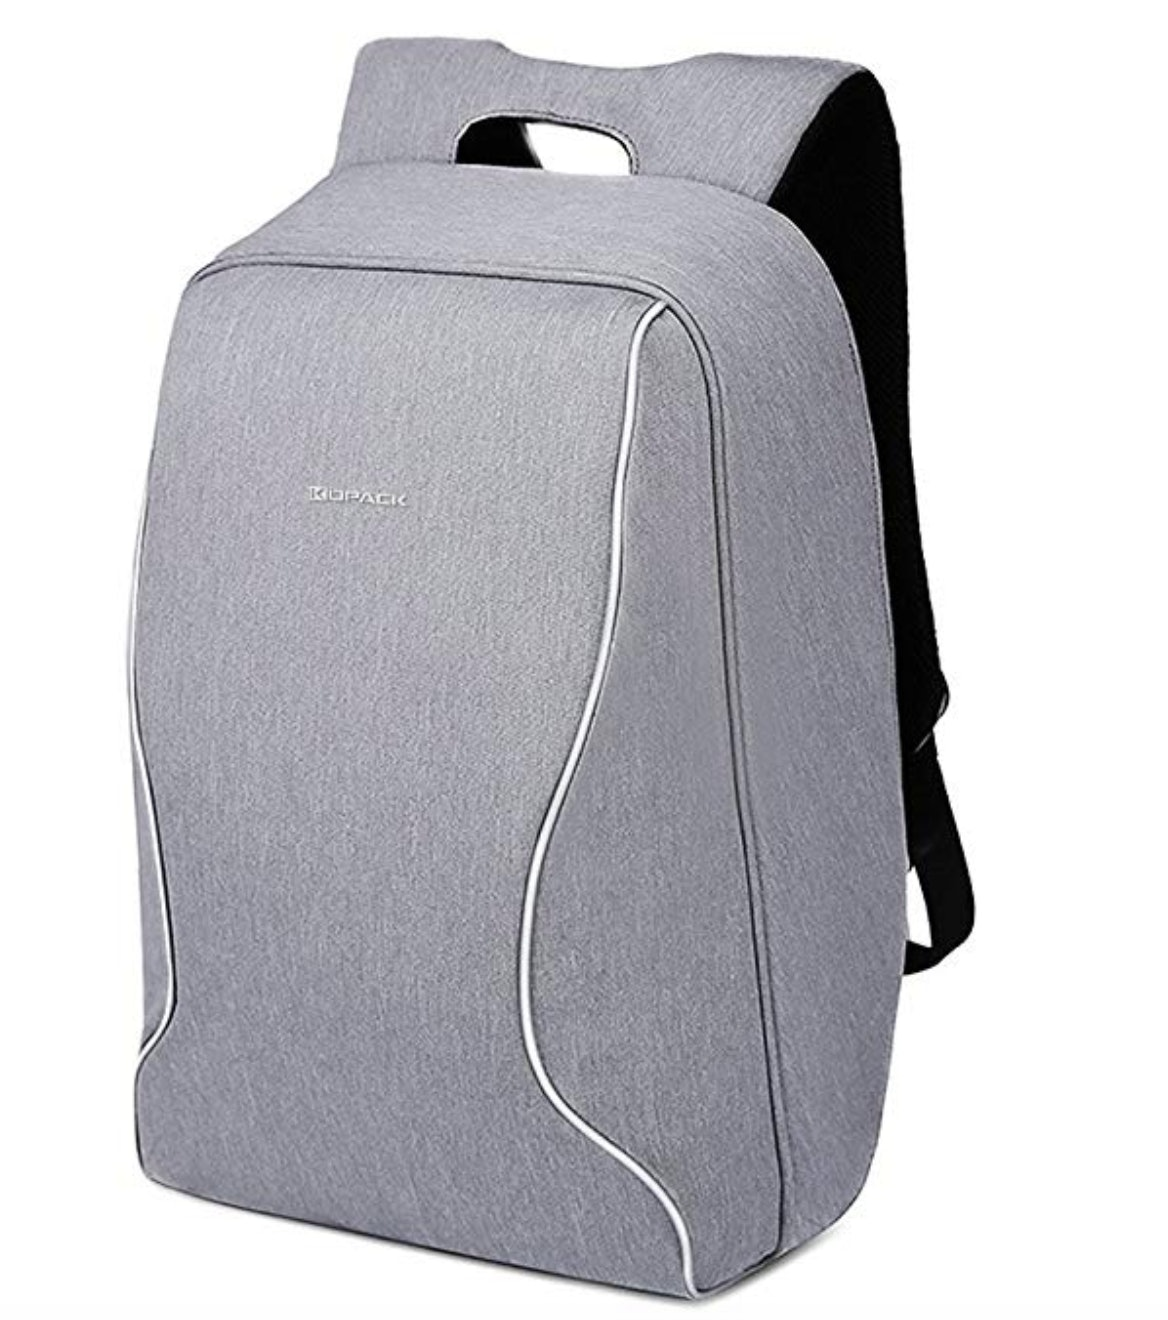 style, technology, theft proof, travel, backpack, business